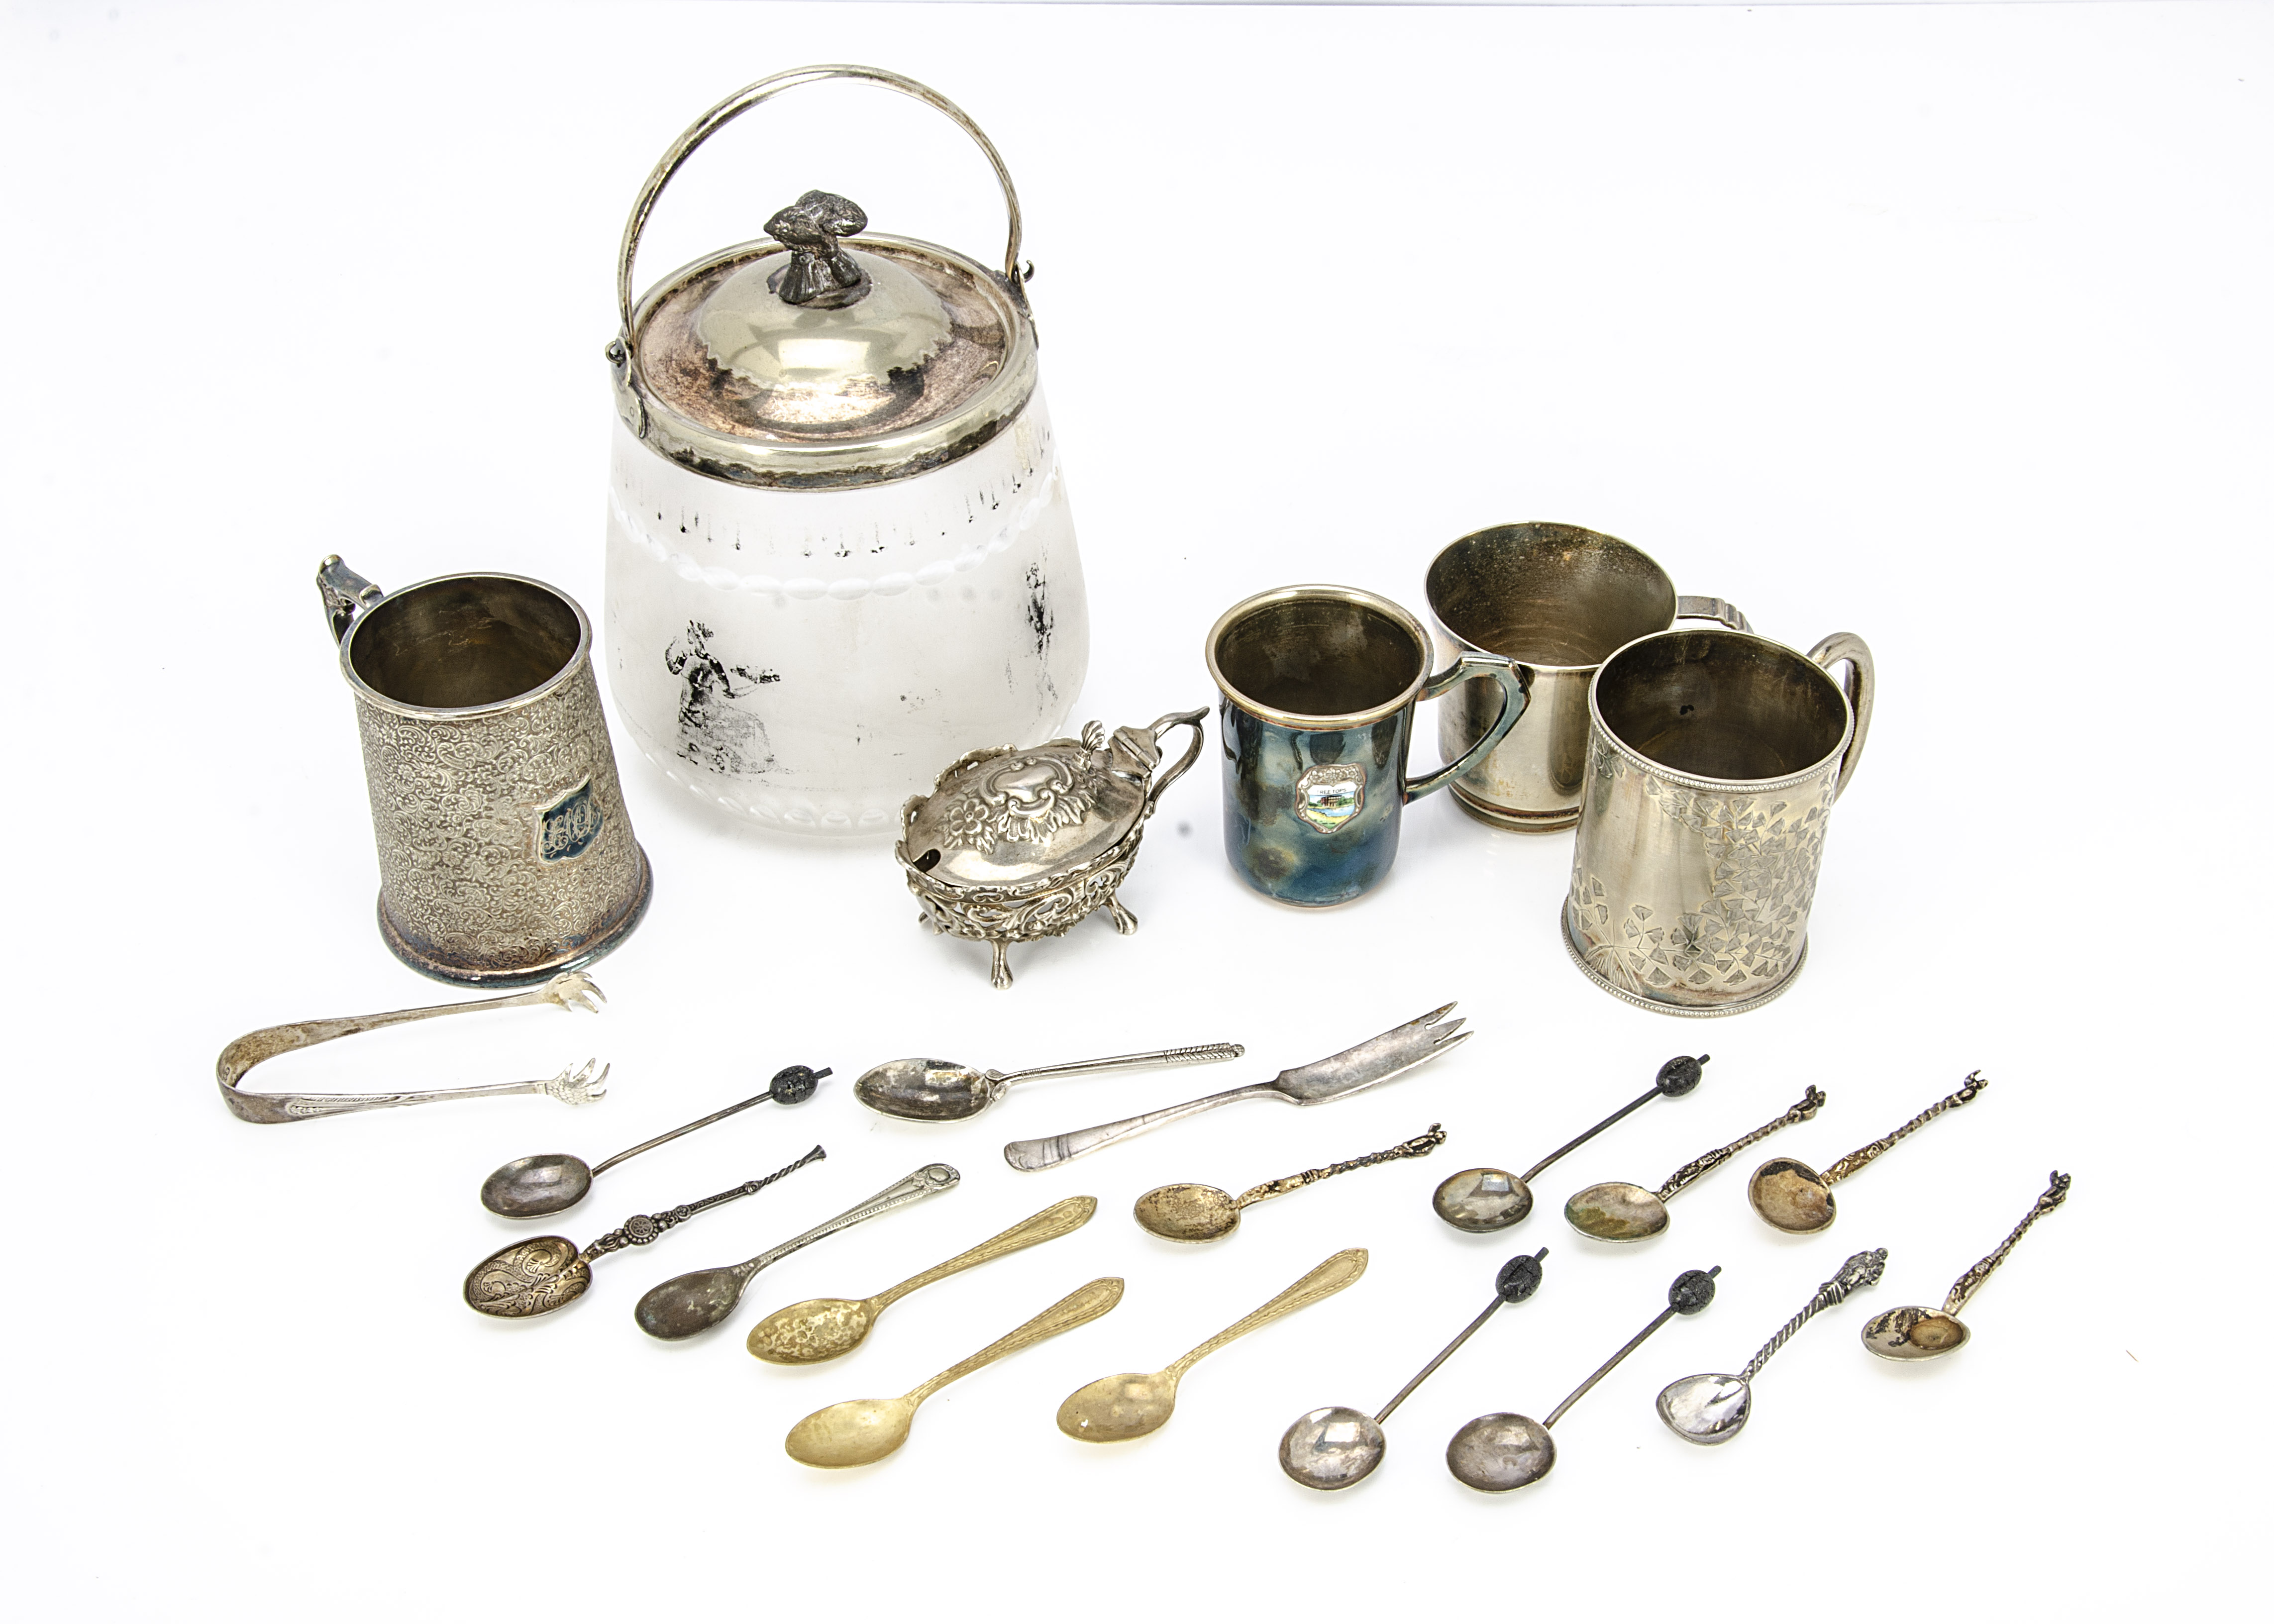 A small group of silver and silver plated items, including a nice silver mustard but lacks liner,